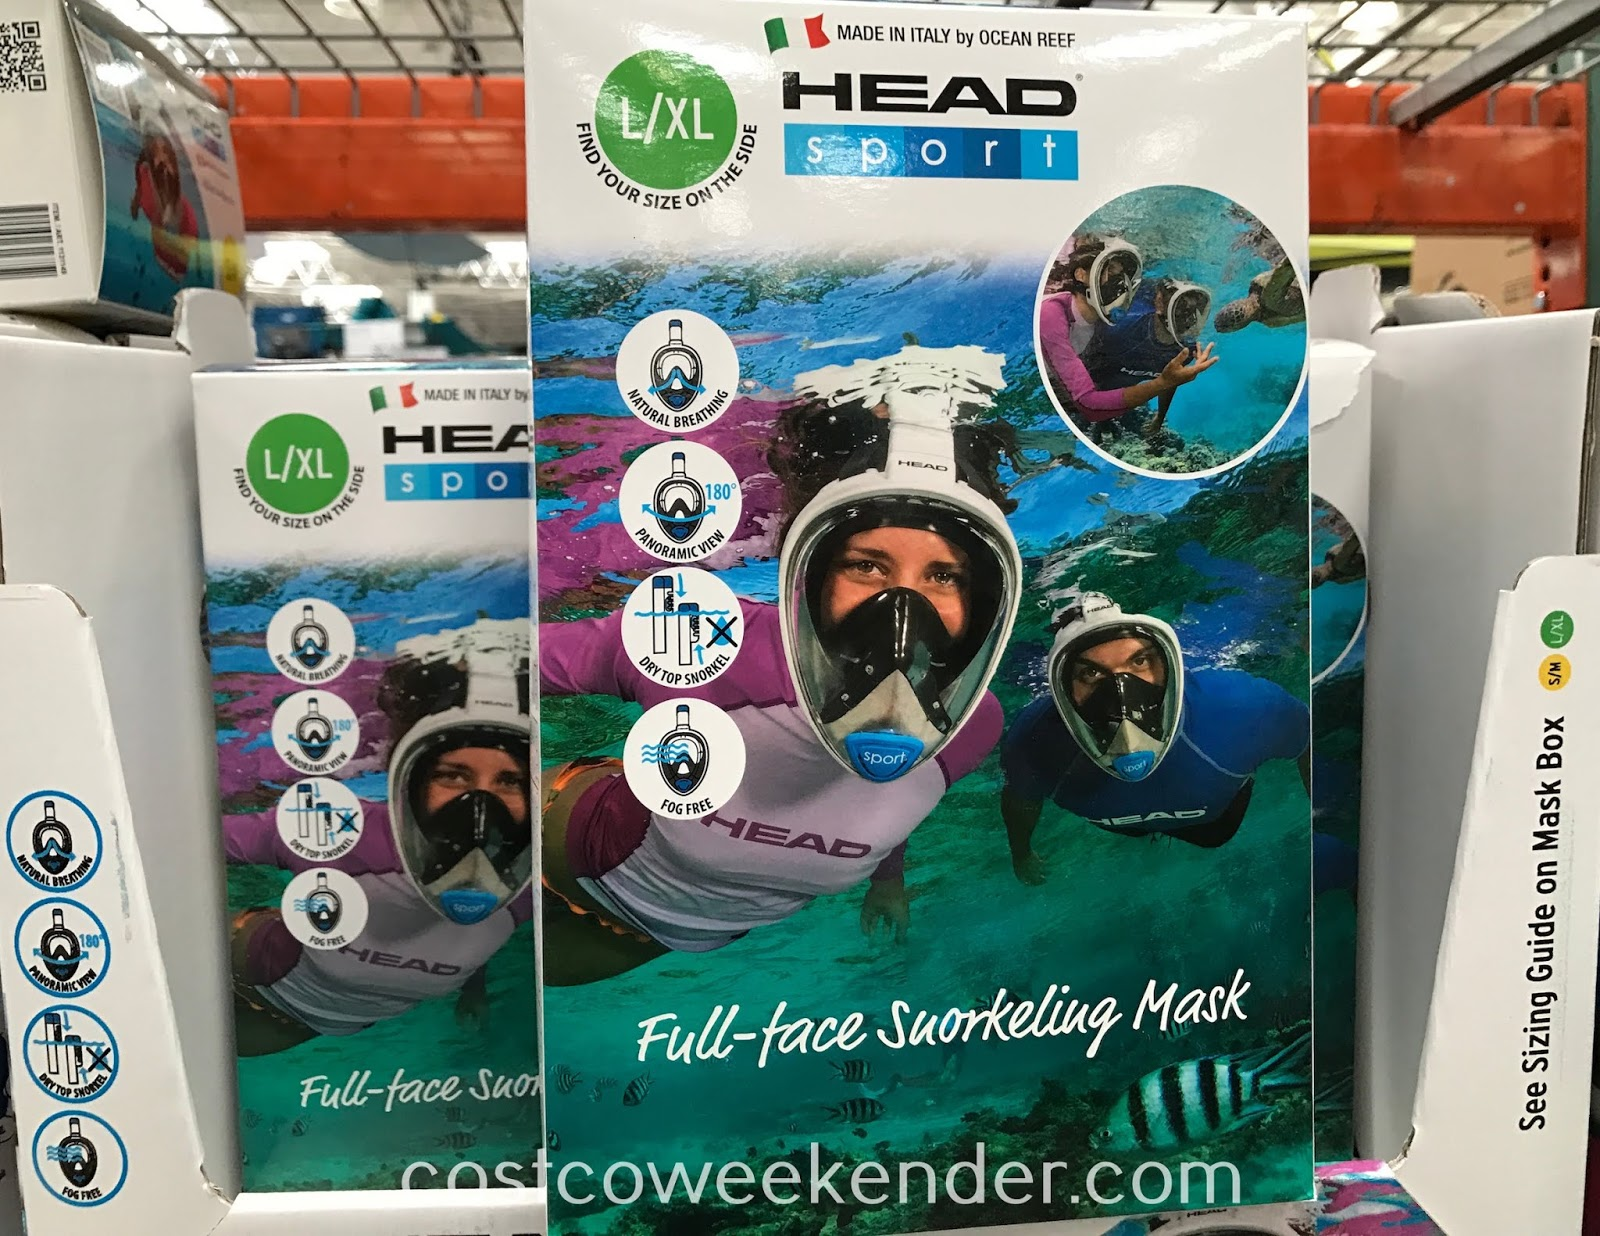 Breathe more naturally when underwater with the Head Full-Face Snorkeling Mask